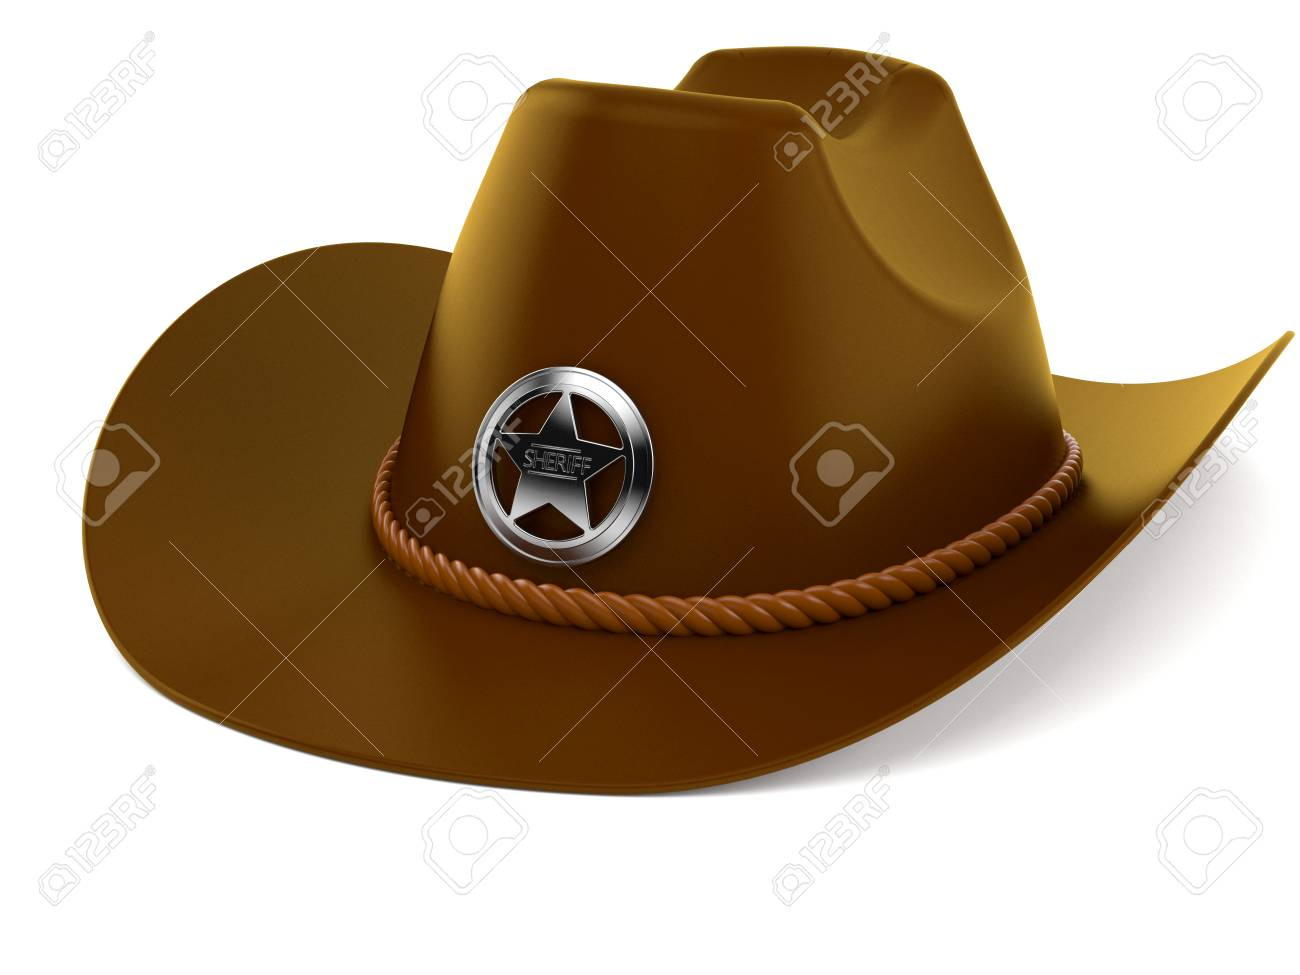 d2bade95 Sheriff Hat Isolated On White Background Stock Photo, Picture And ...